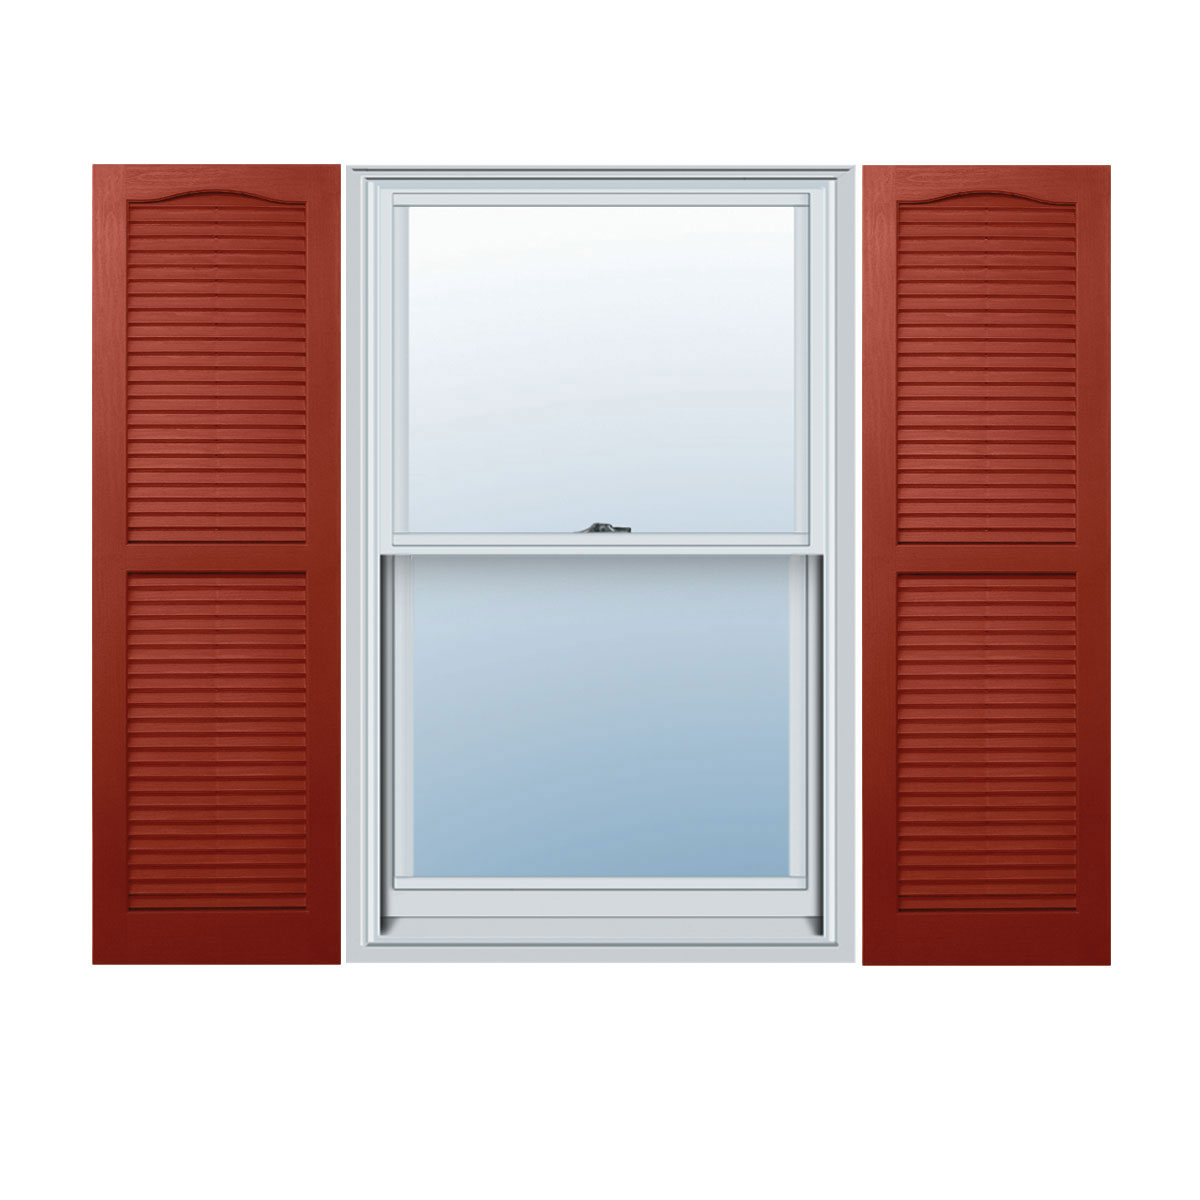 "14 1/2"" x 55"" Builders Choice Vinyl Open Louver Window Shutters, w/Shutter Spikes & Screws (Per Pair), Indigo Blue"